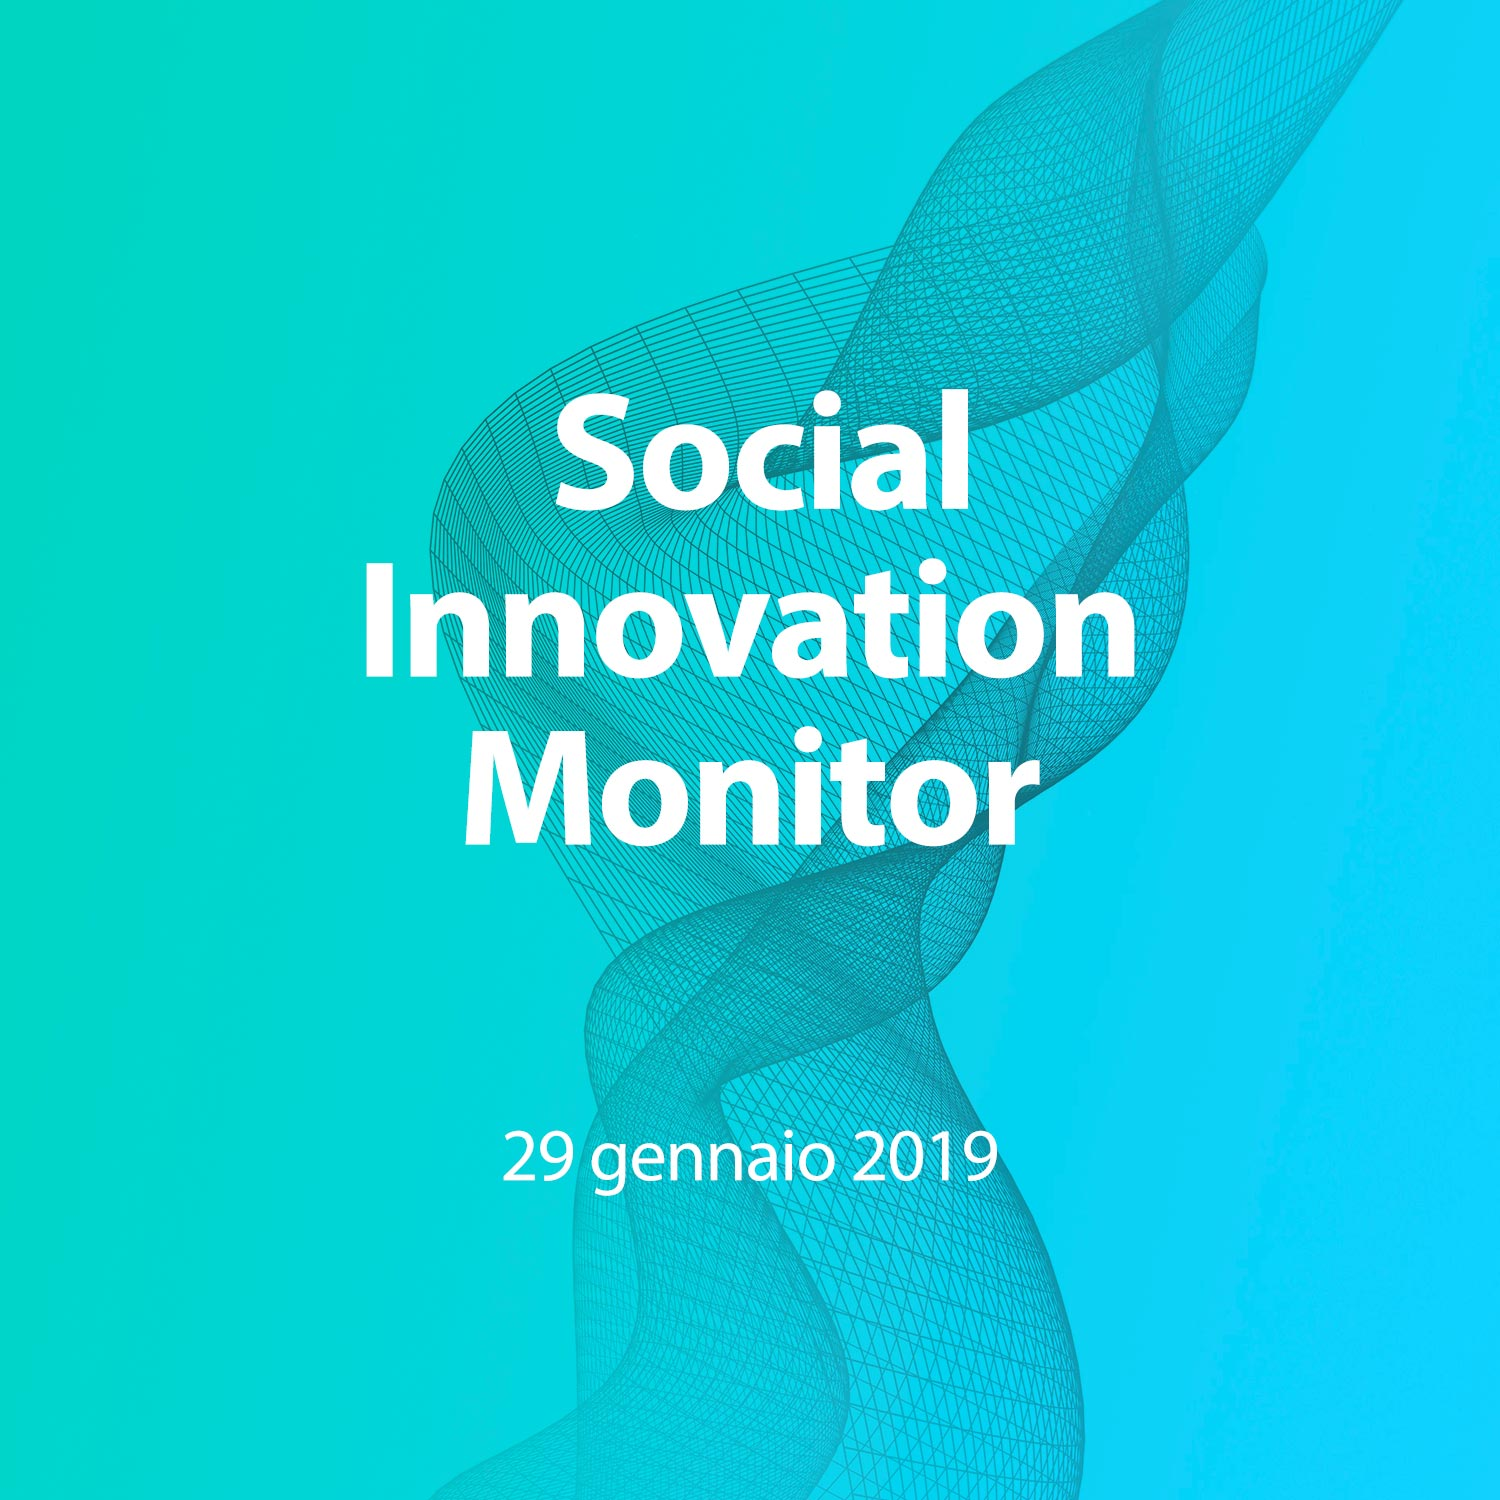 Social Innovation Monitor 2019